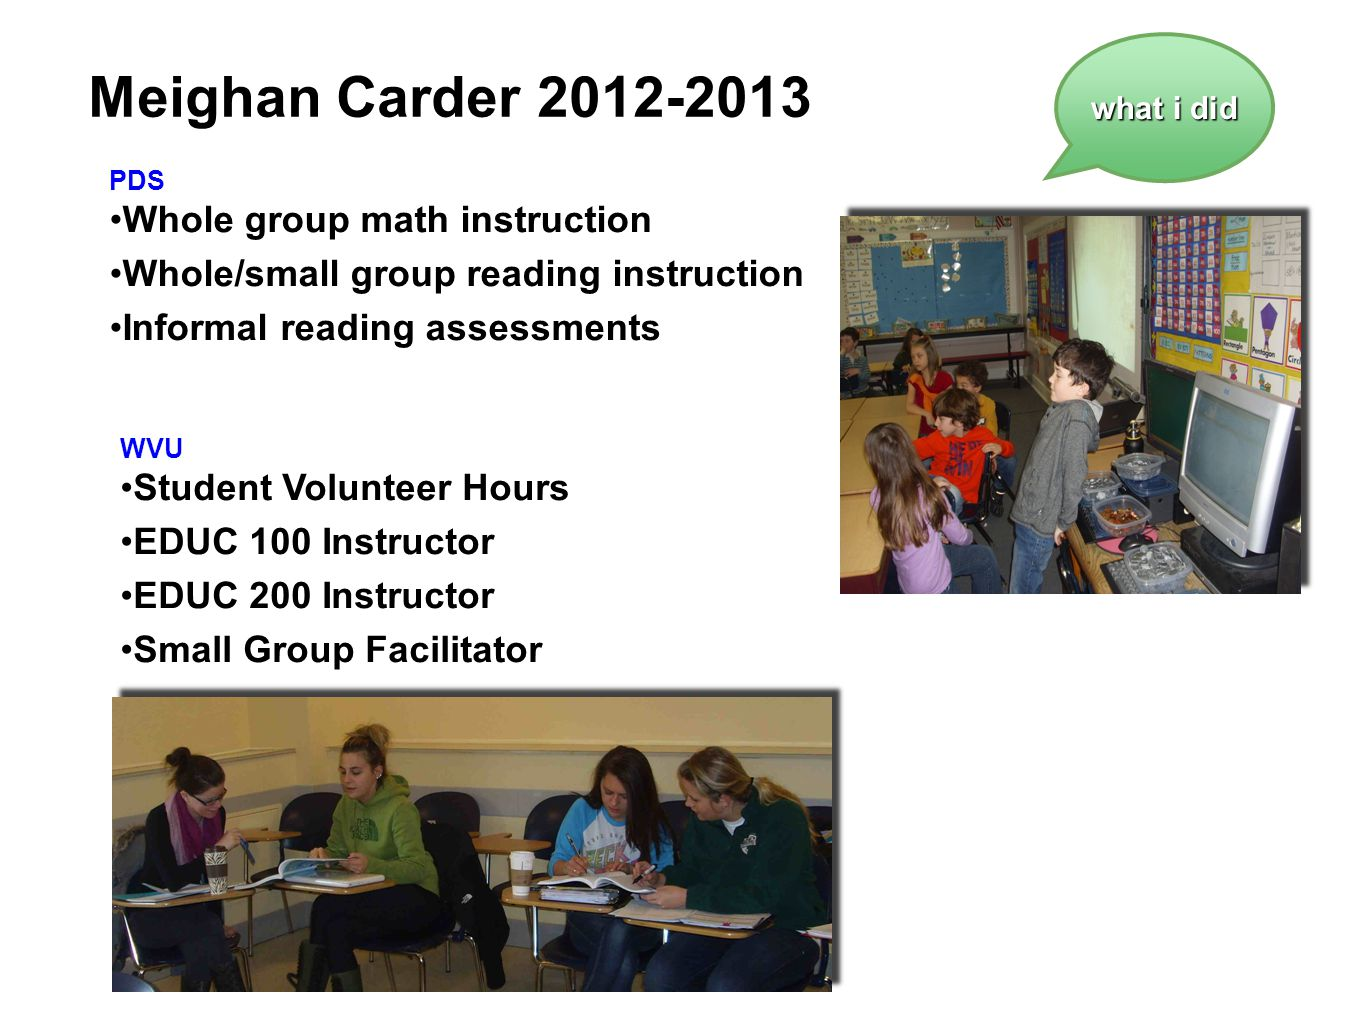 Meighan Carder 2012-2013 Whole group math instruction